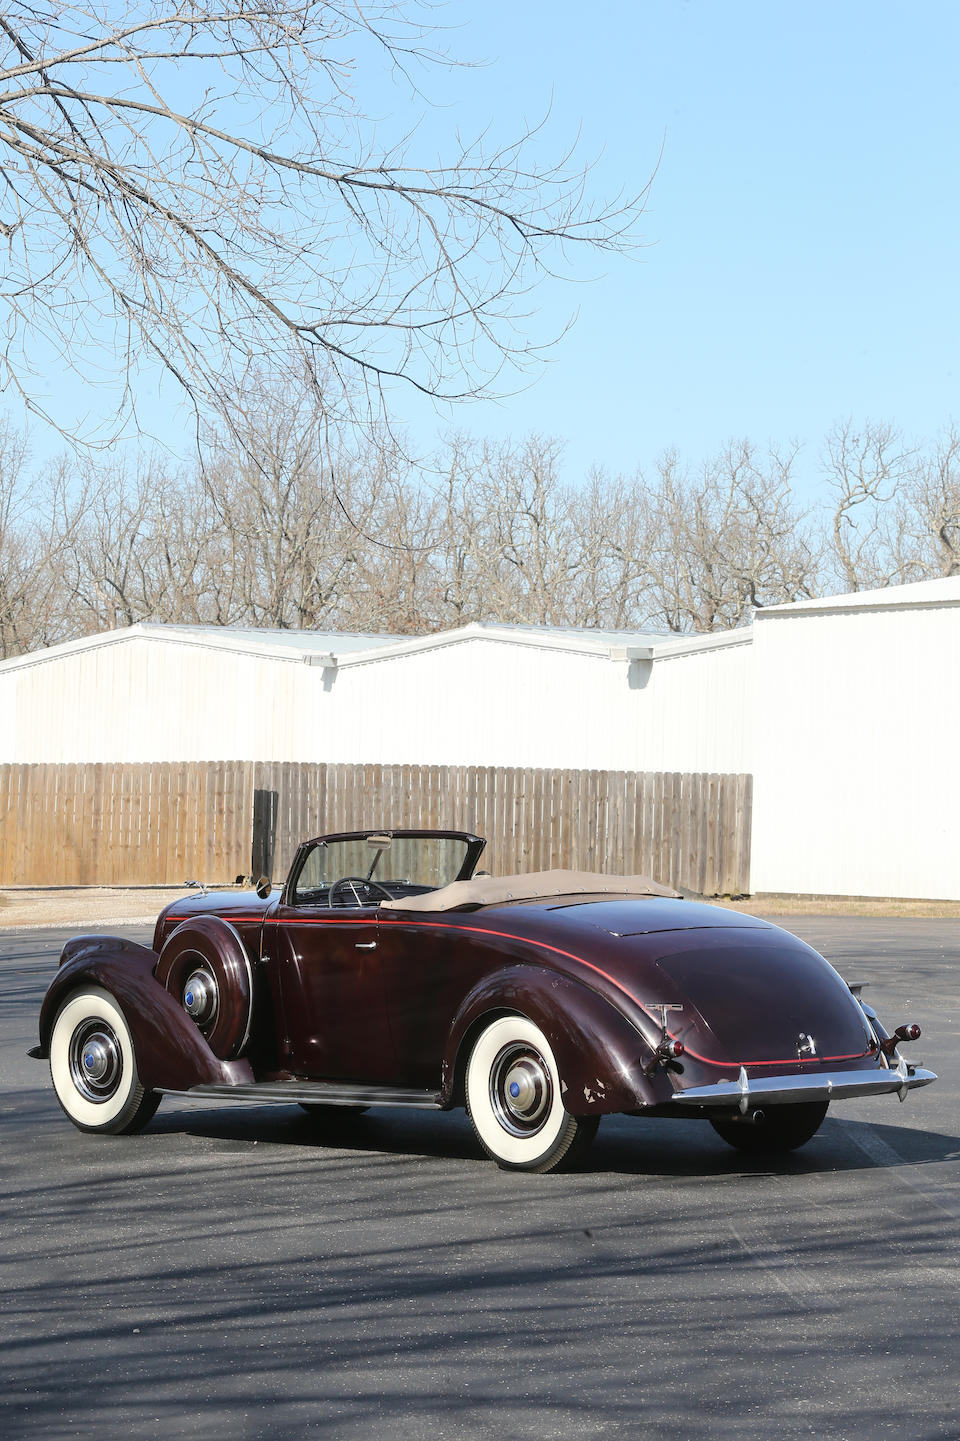 <b>1937 Lincoln Model K Coupe Roadster</b><br />Chassis no. A35089